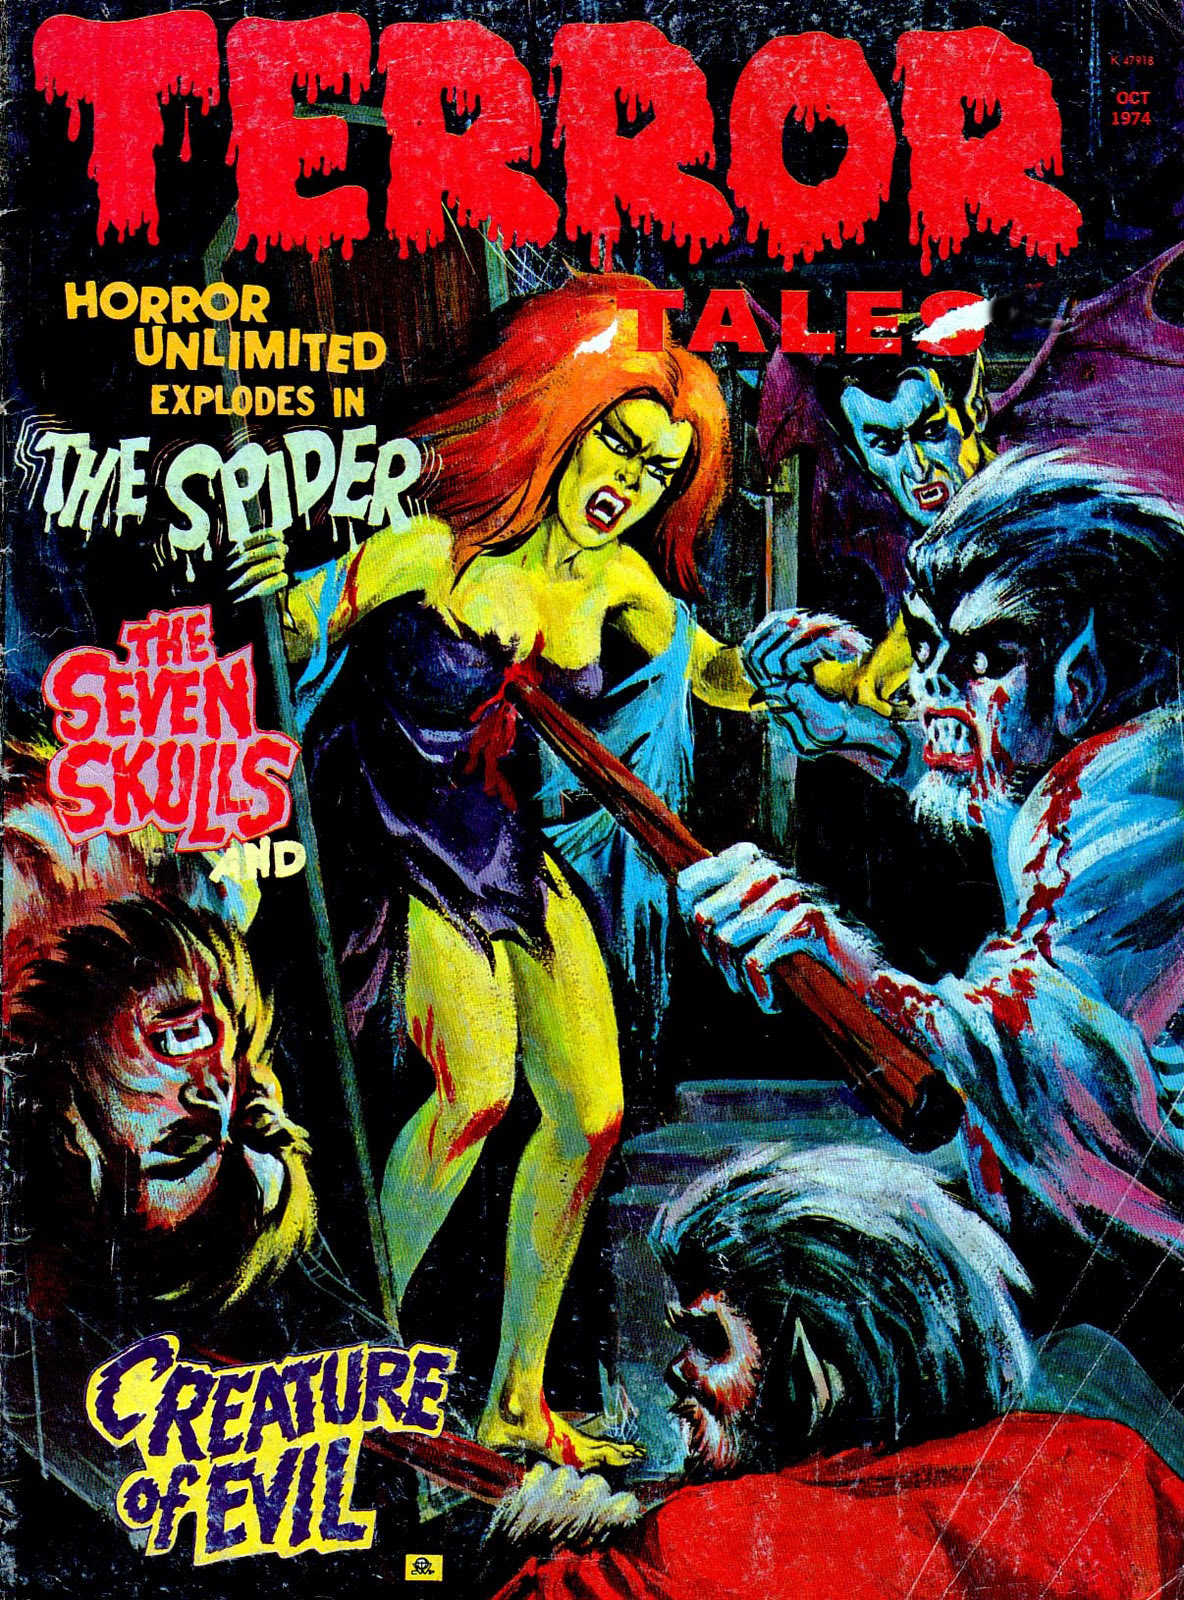 Terror Tales Vol. 06 #5 (Eerie Publications, 1974)